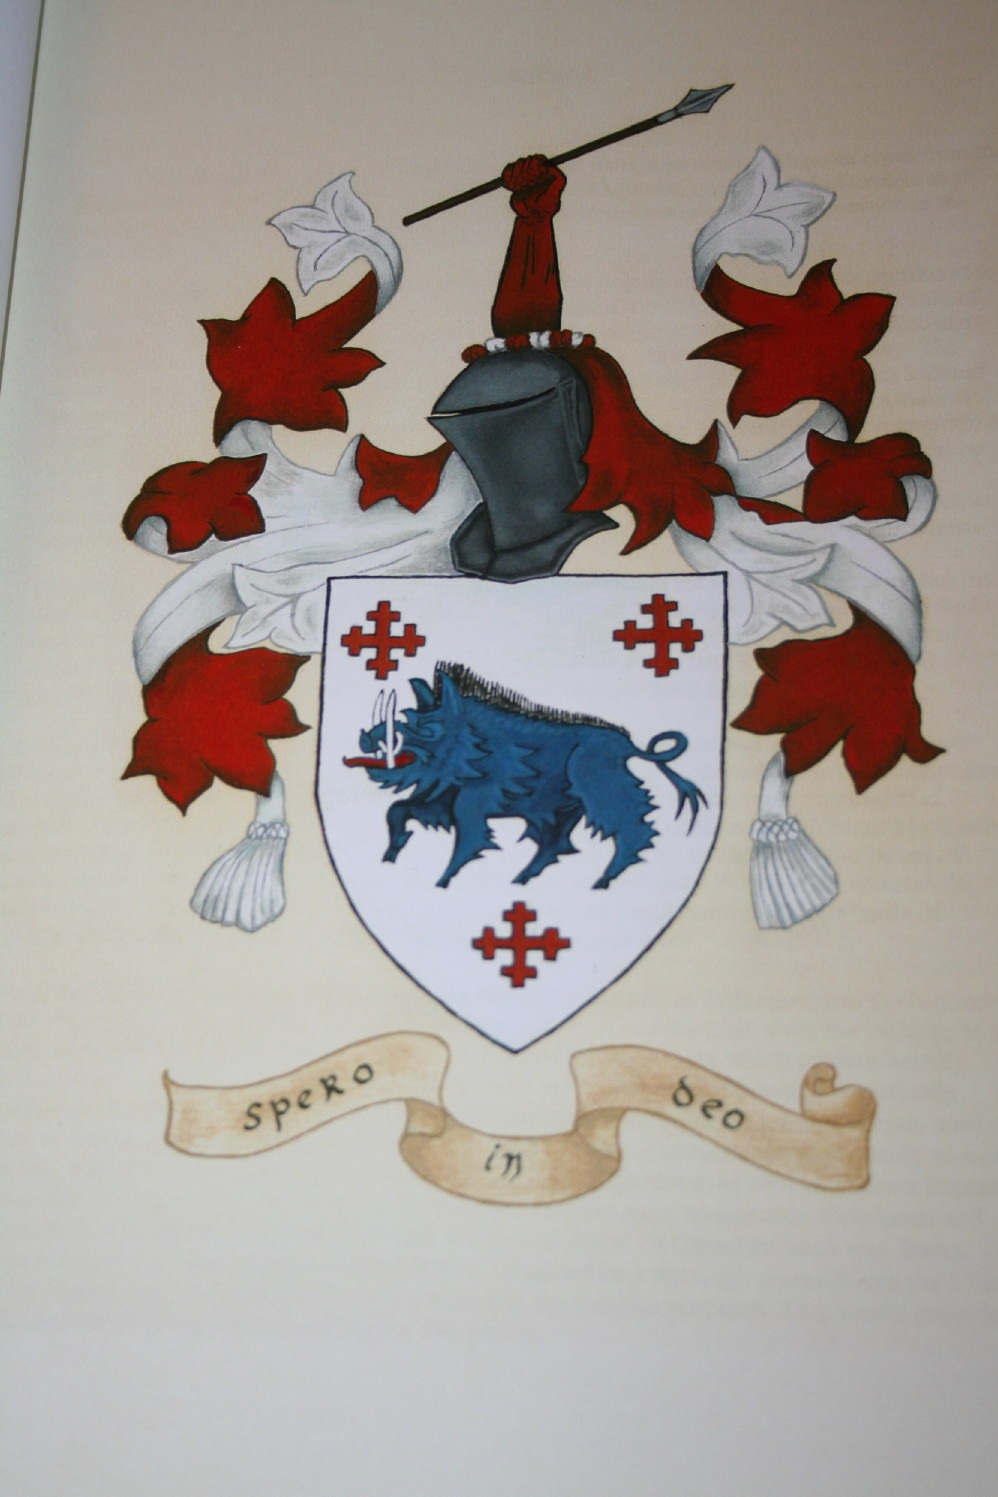 O'Crowley Chief Coat of Arms per records since 1562